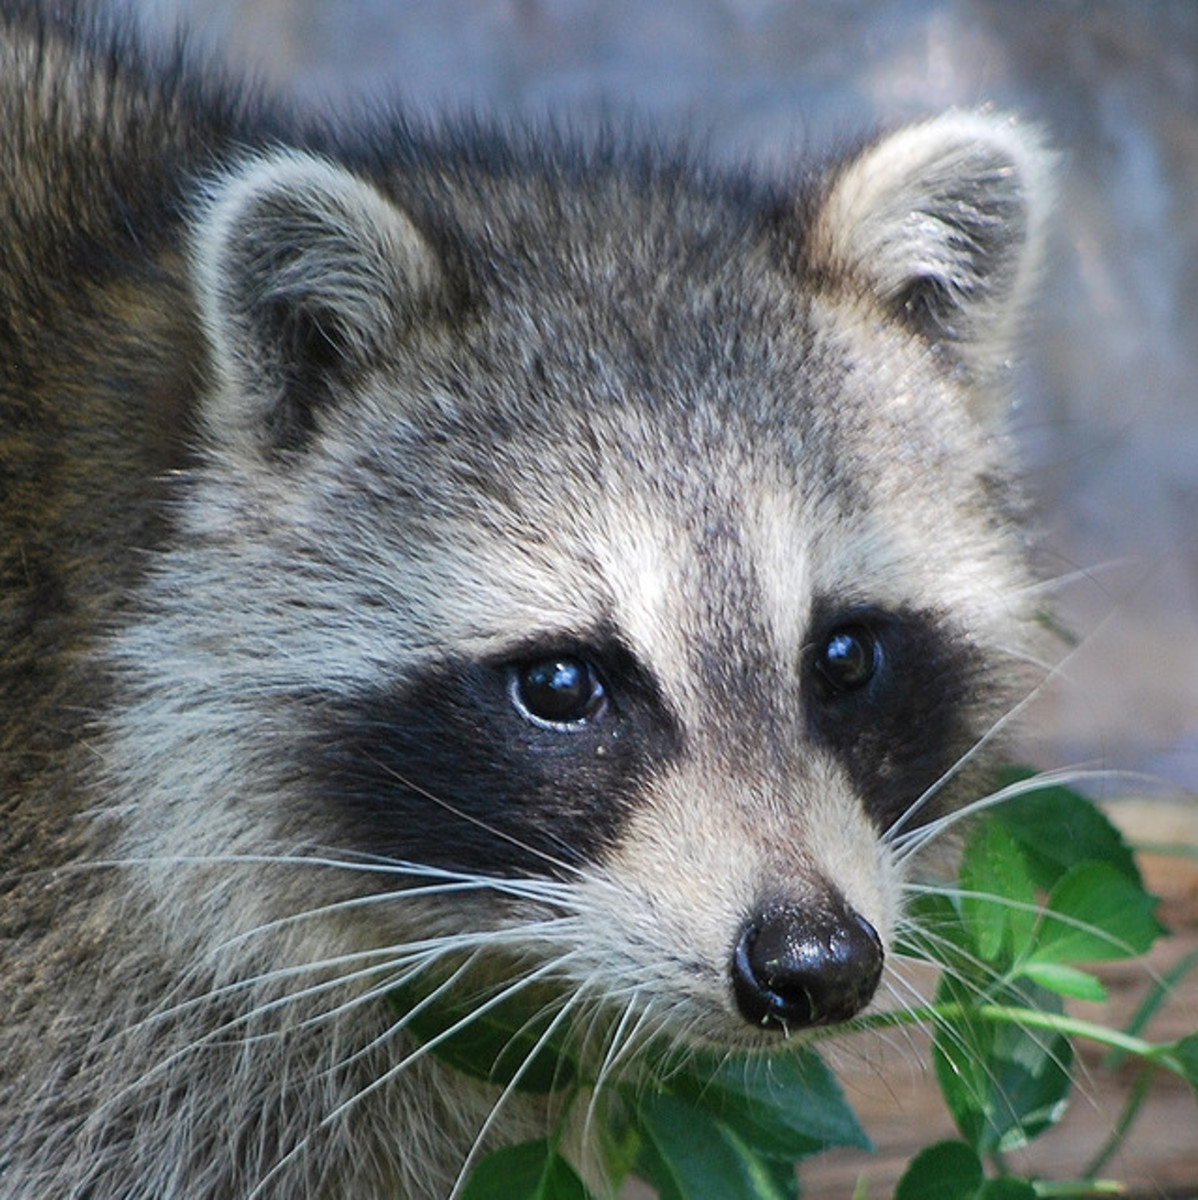 Lawn Grubs: How to Identify, Get Rid of, and Prevent Them ... Raccoon Face